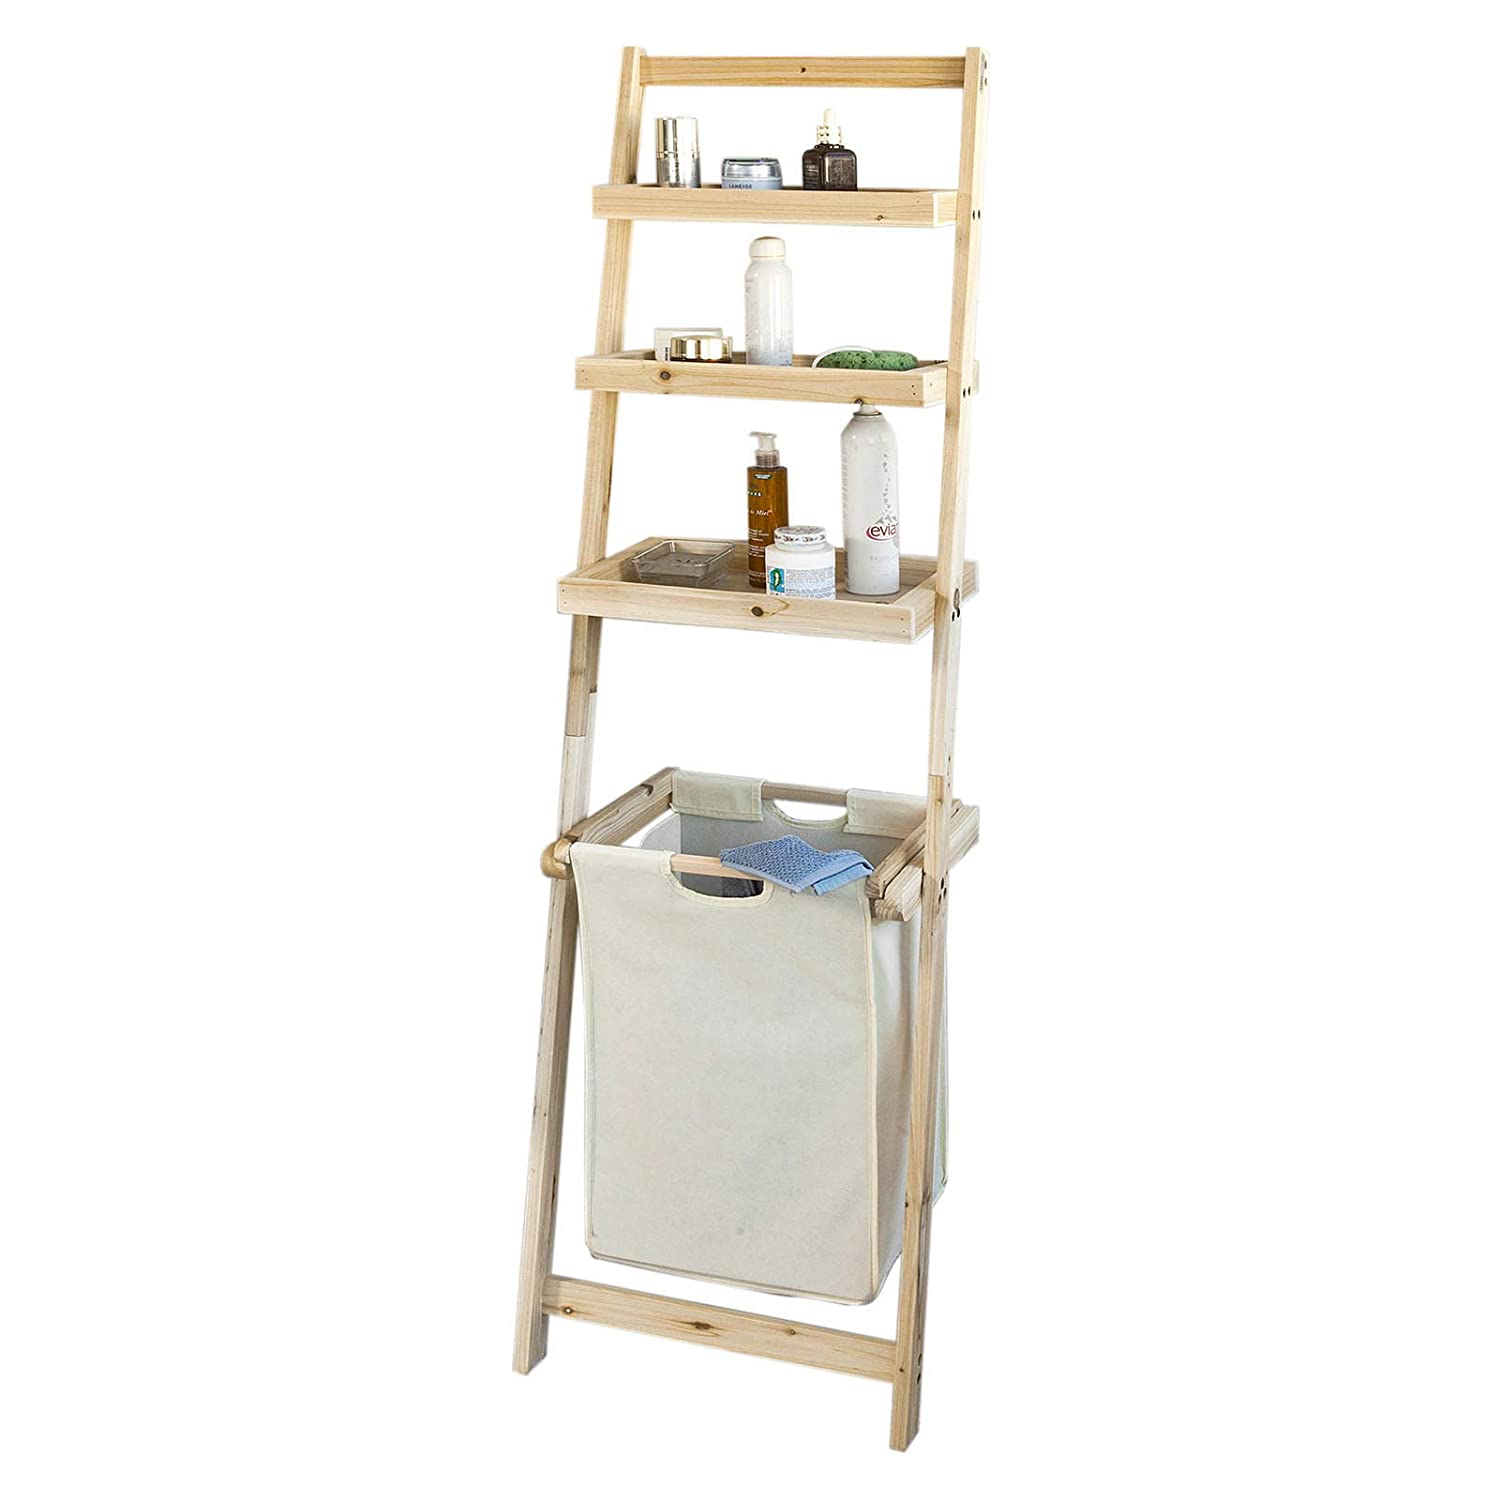 SoBuy® FRG160-N, Bathroom Storage Shelf, Ladder Shelf with 3 Storage Shelves &1 Removable Laundry Basket